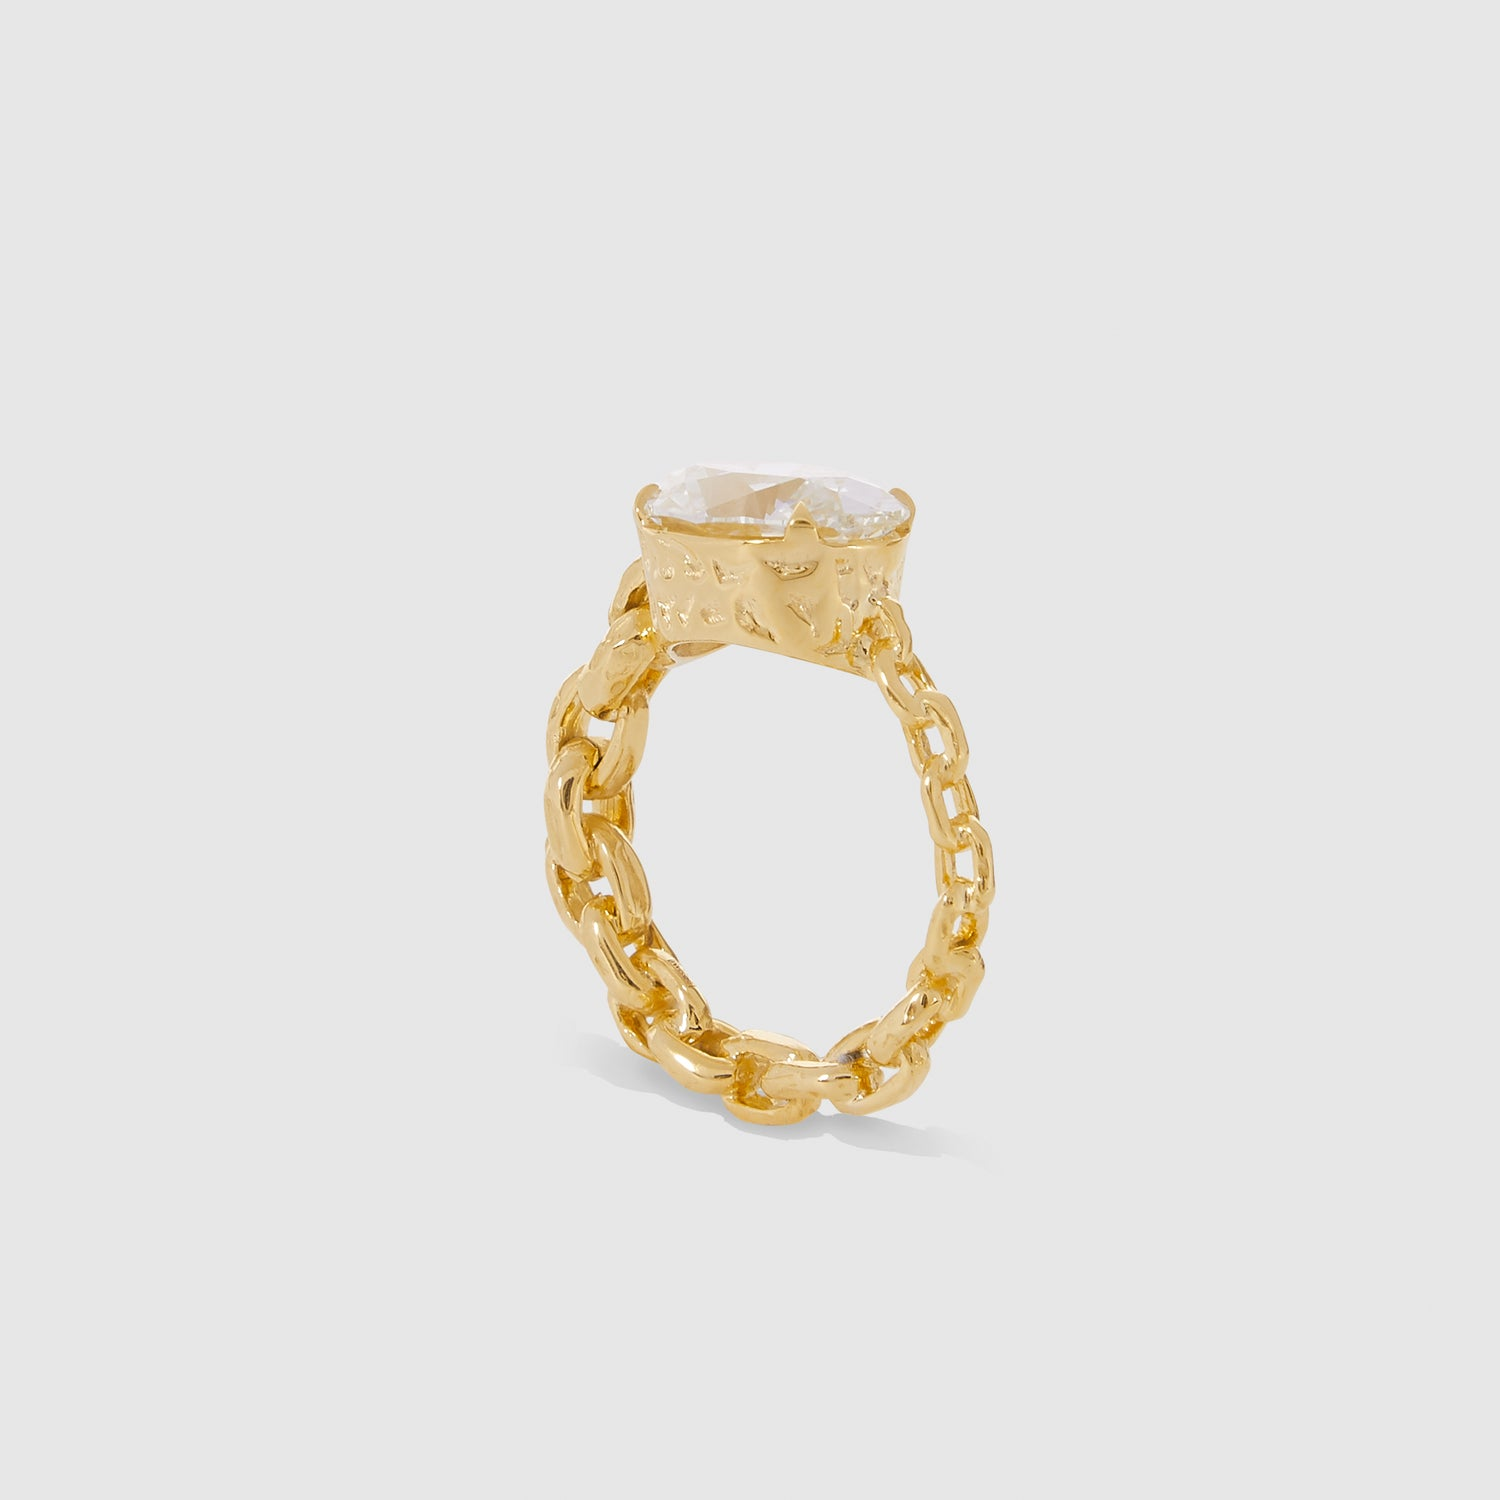 Scale Chain Ring